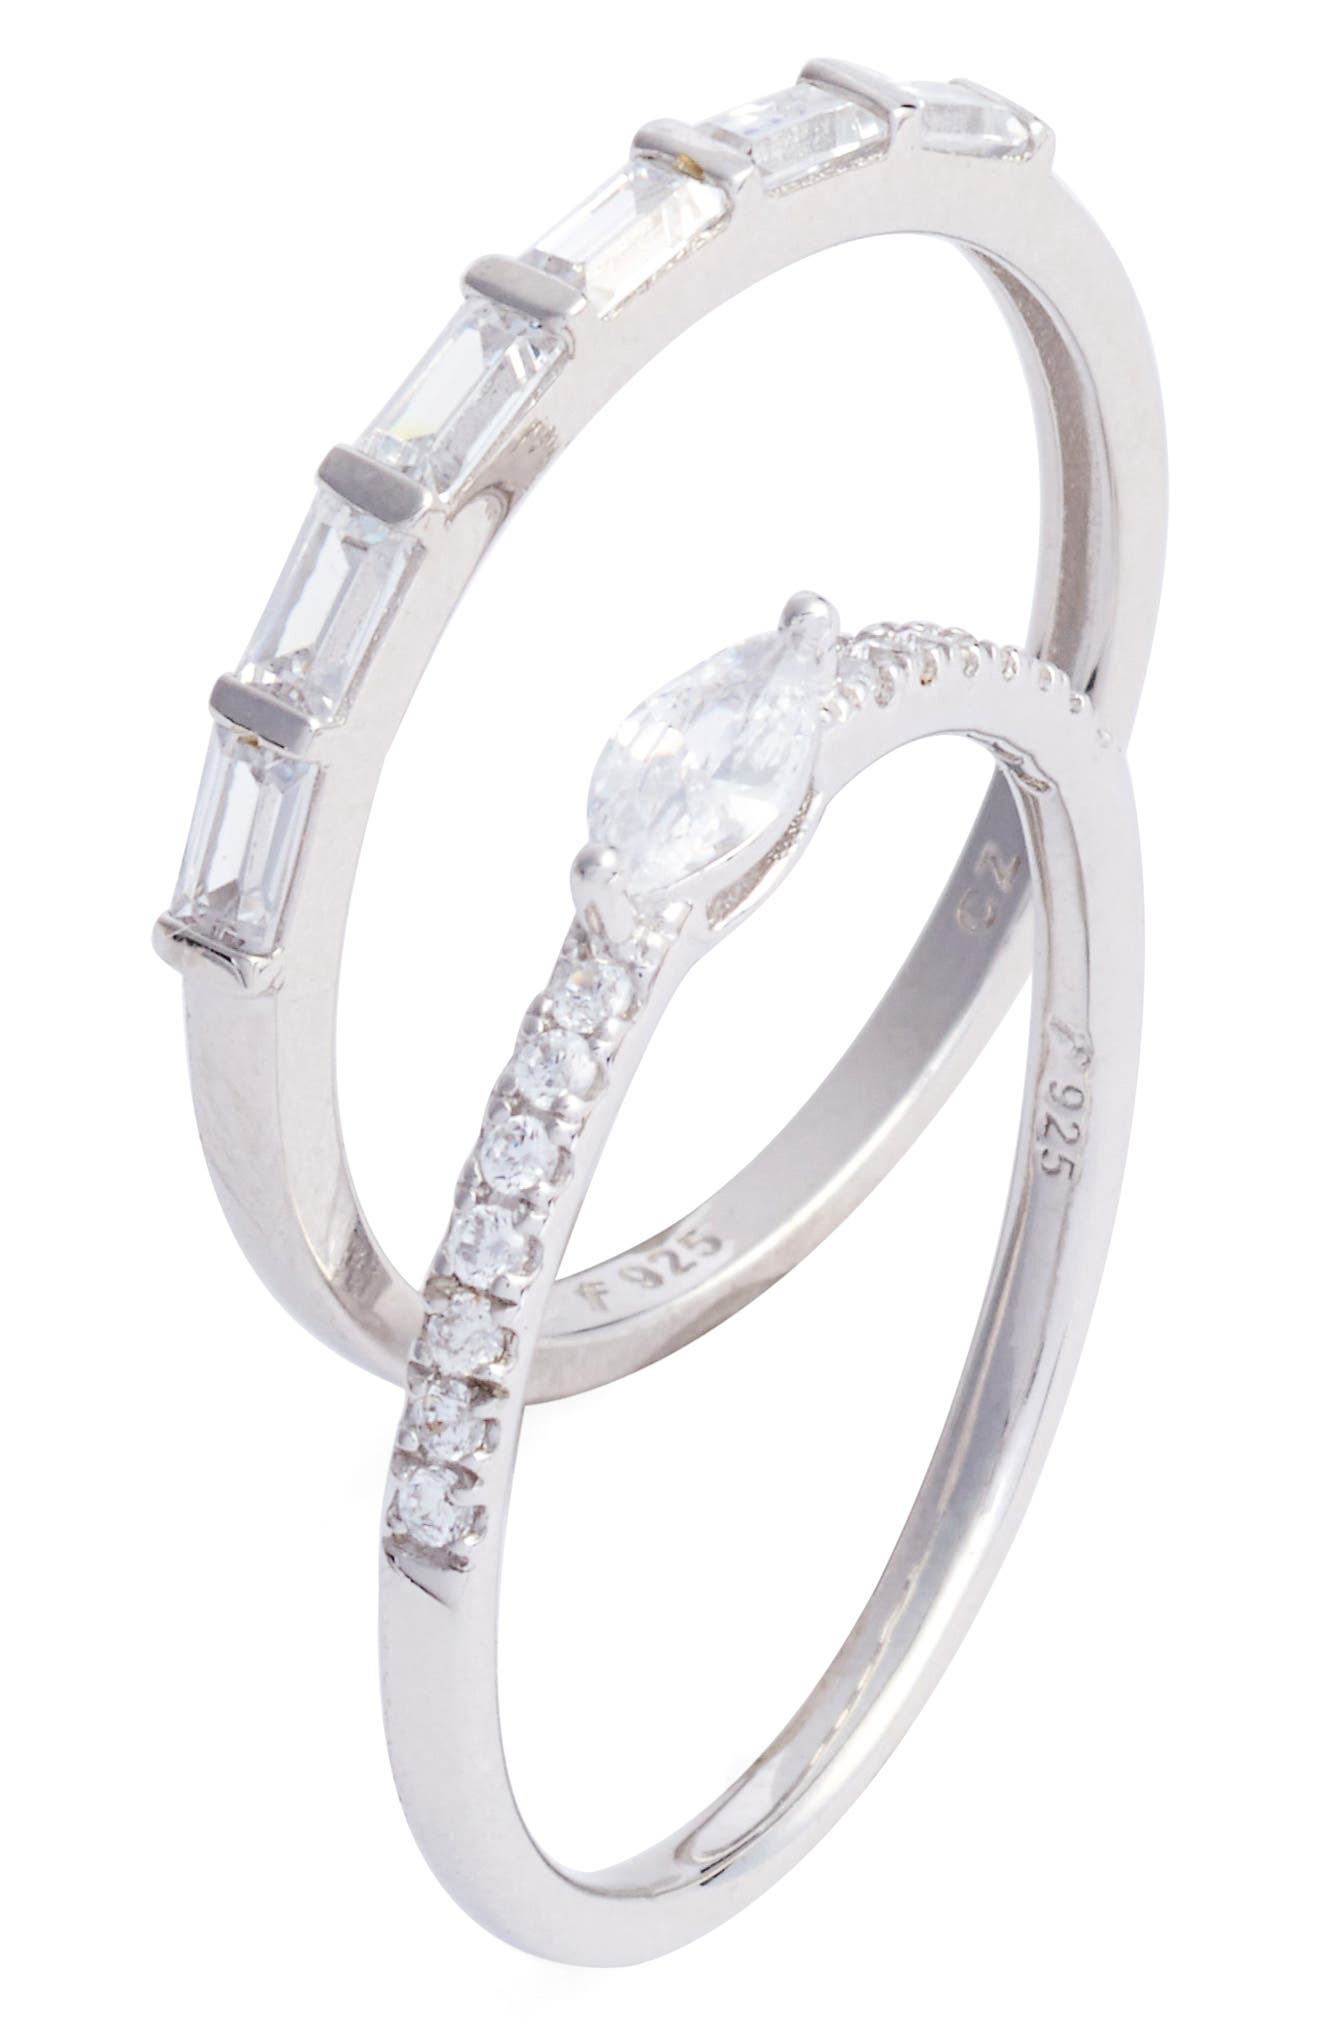 Set of 2 Cubic Zirconia Stacking Rings,                         Main,                         color, 040